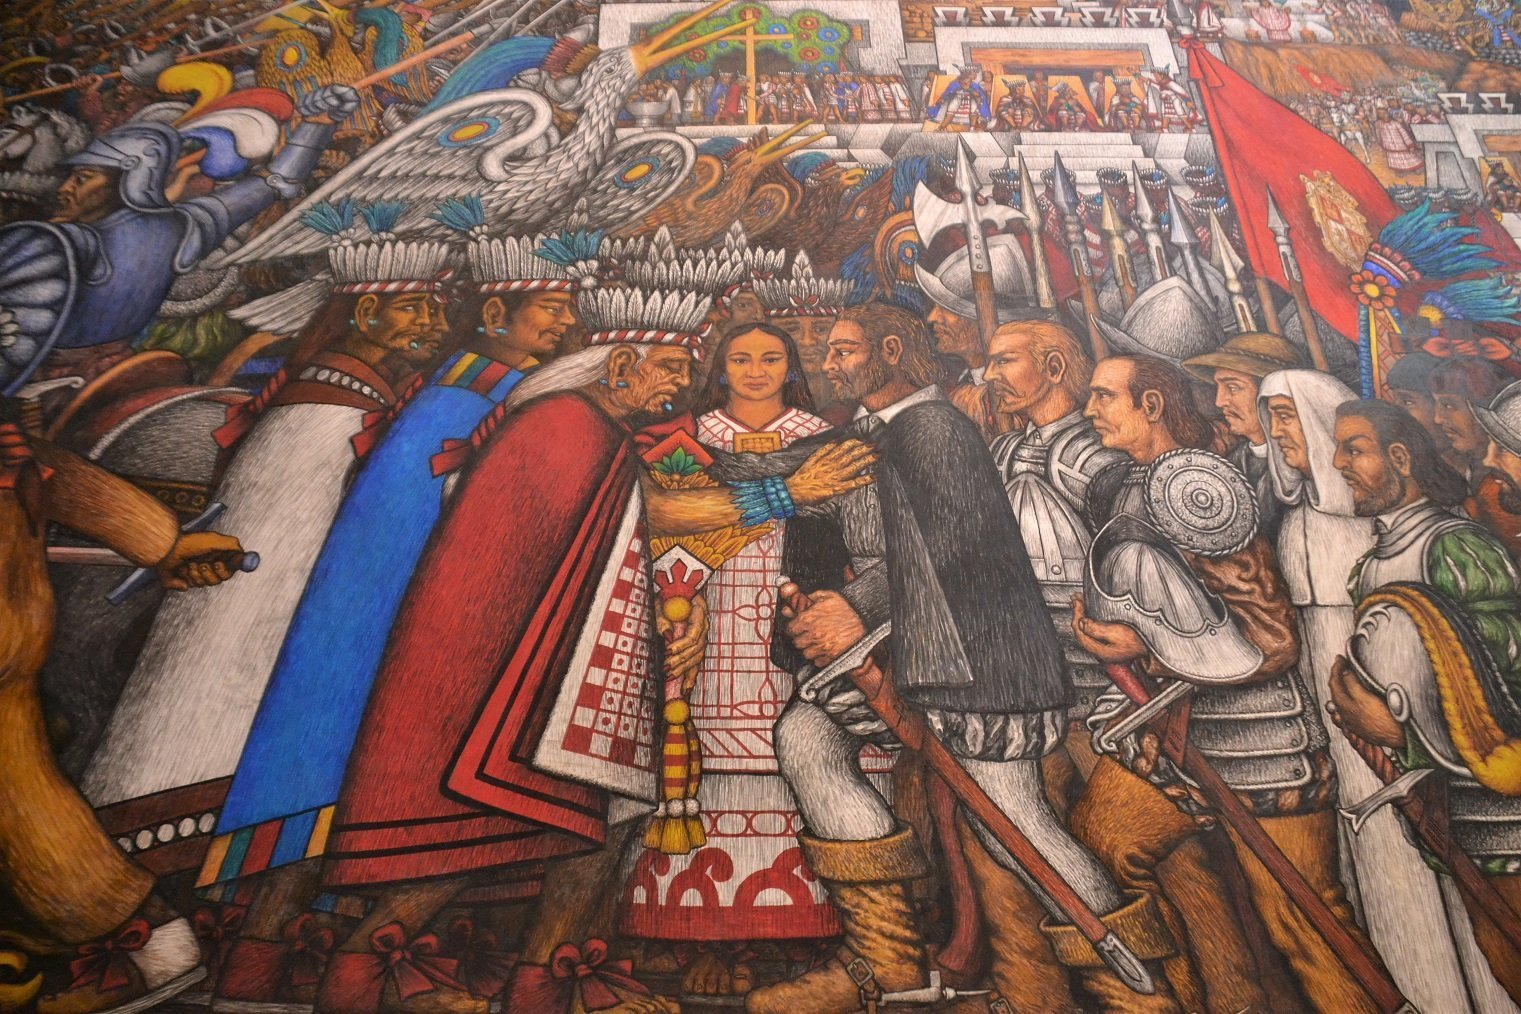 /cms/uploads/image/file/556912/Murales_Tlaxcala__1_.jpg